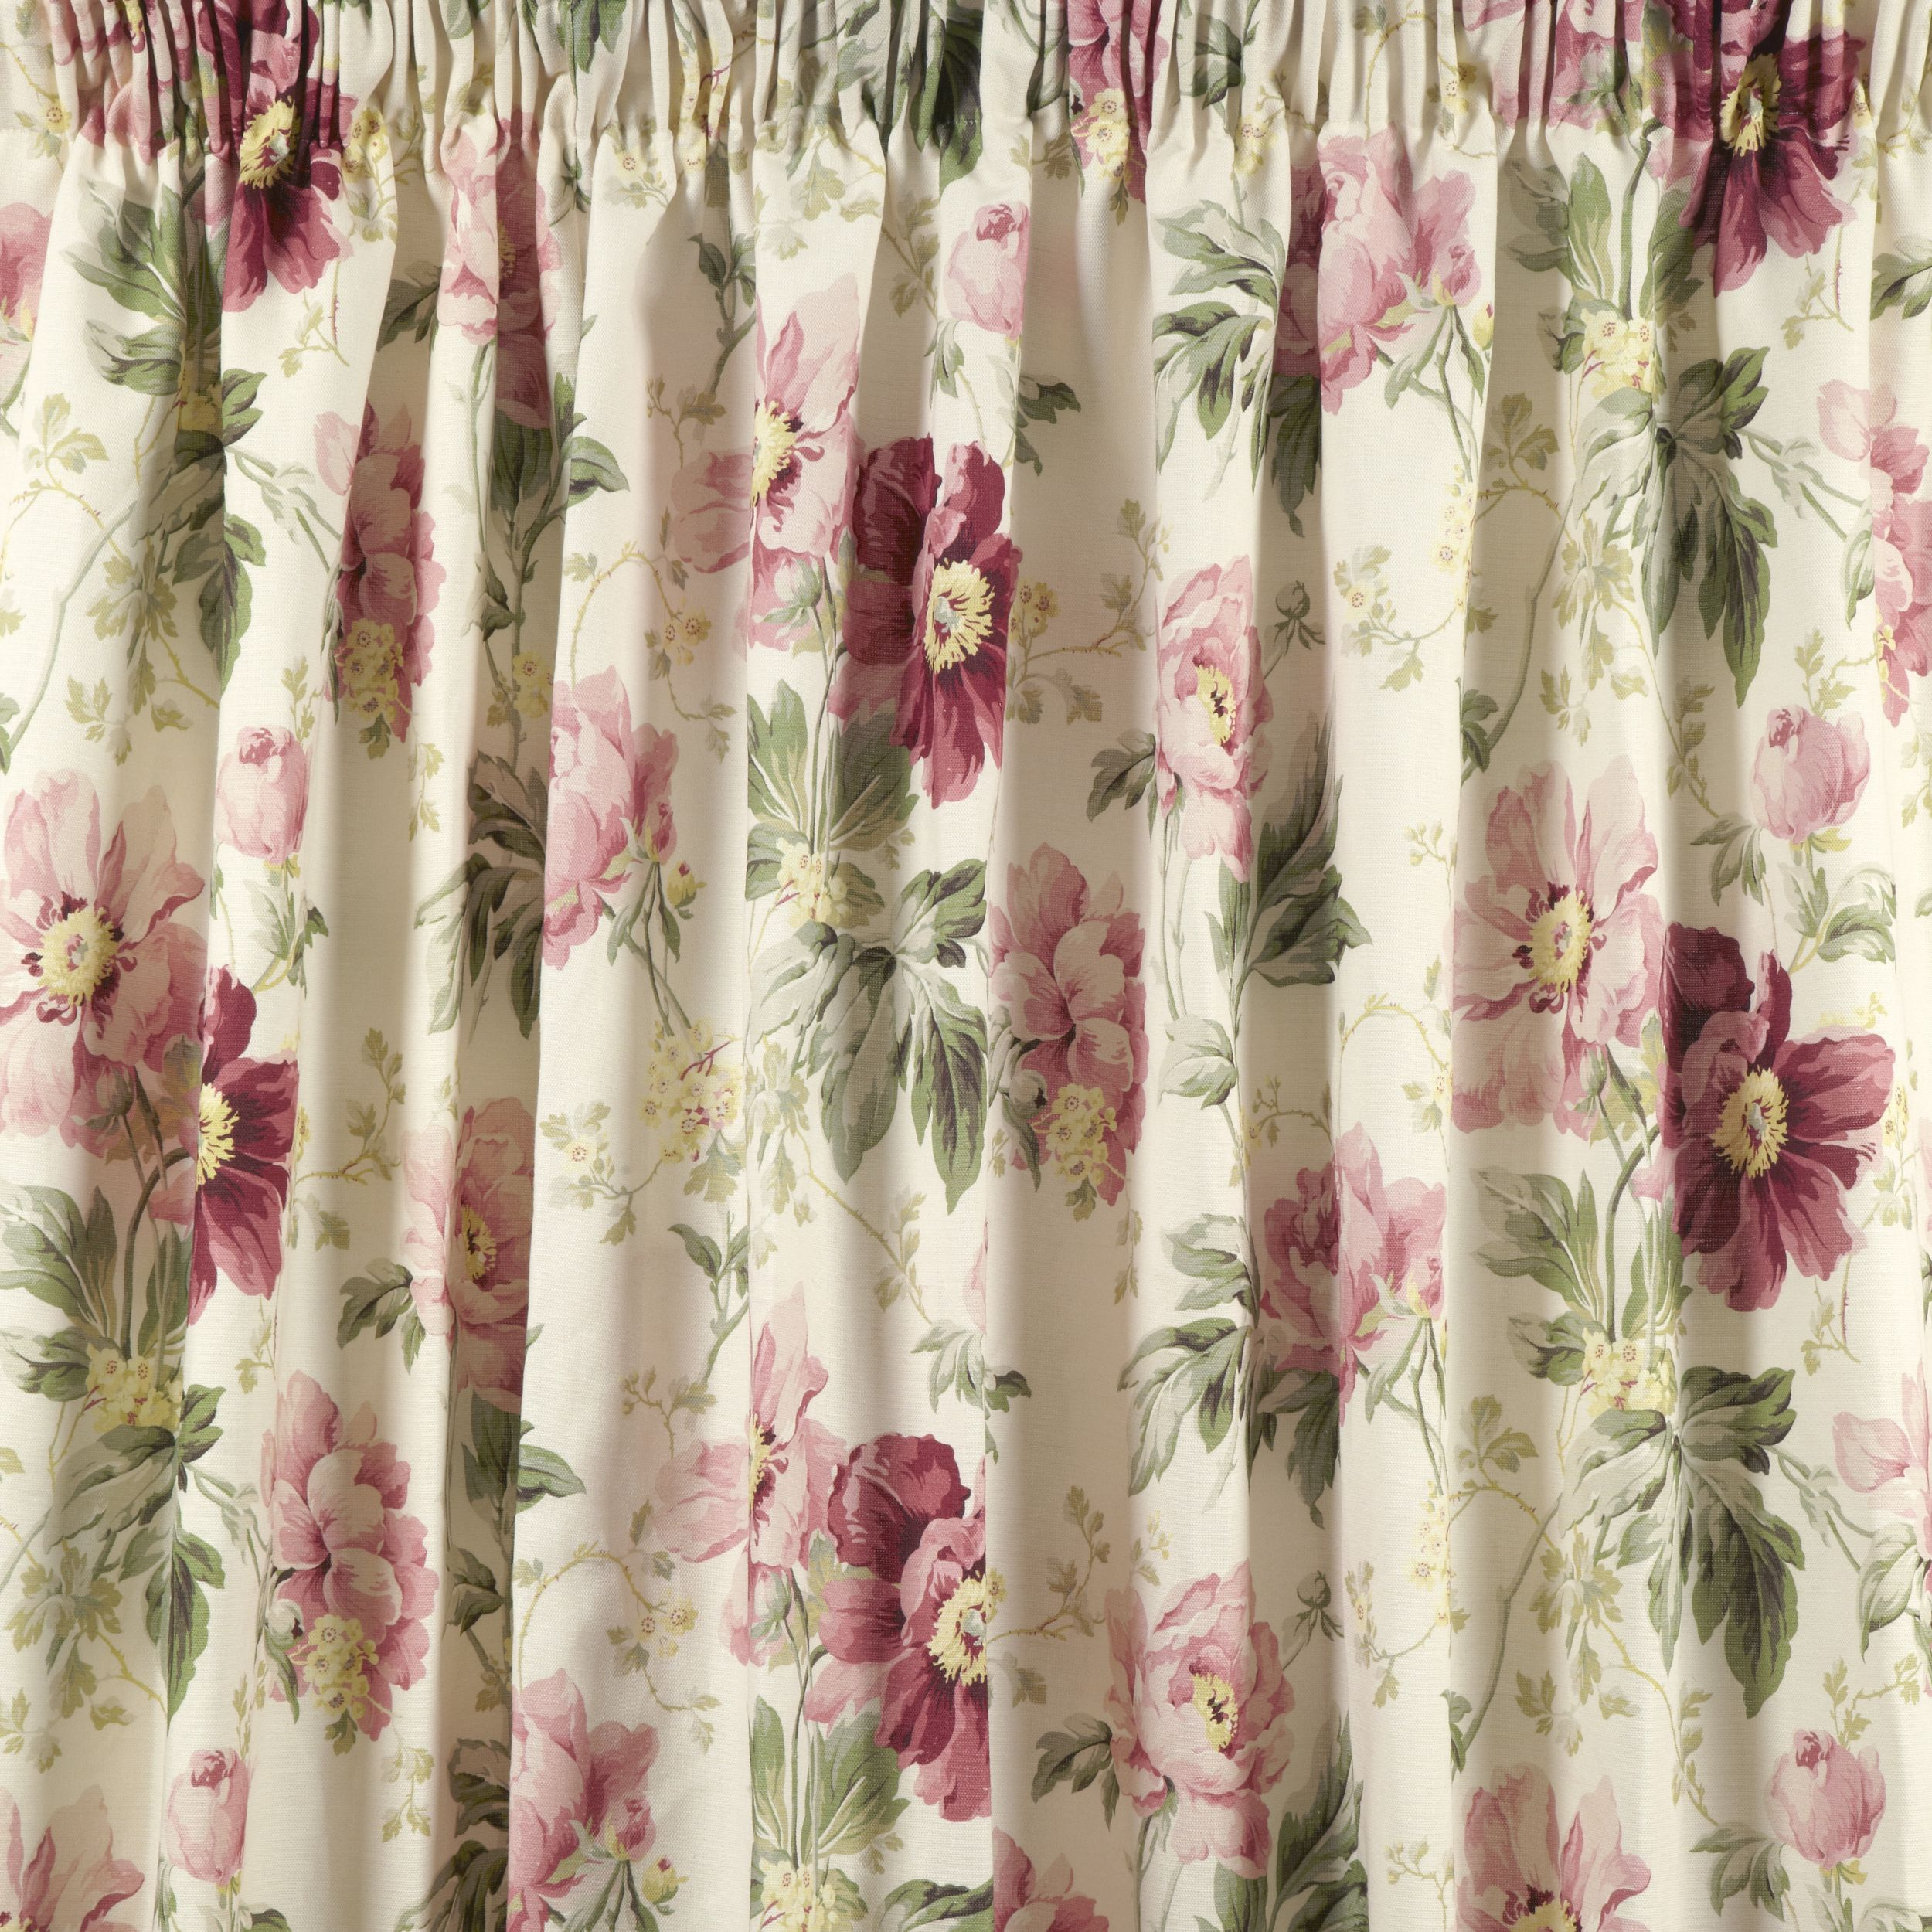 Living Room Ready Made Curtains Peony Garden Cranberry Cotton Pencil Pleat Ready Made Curtains